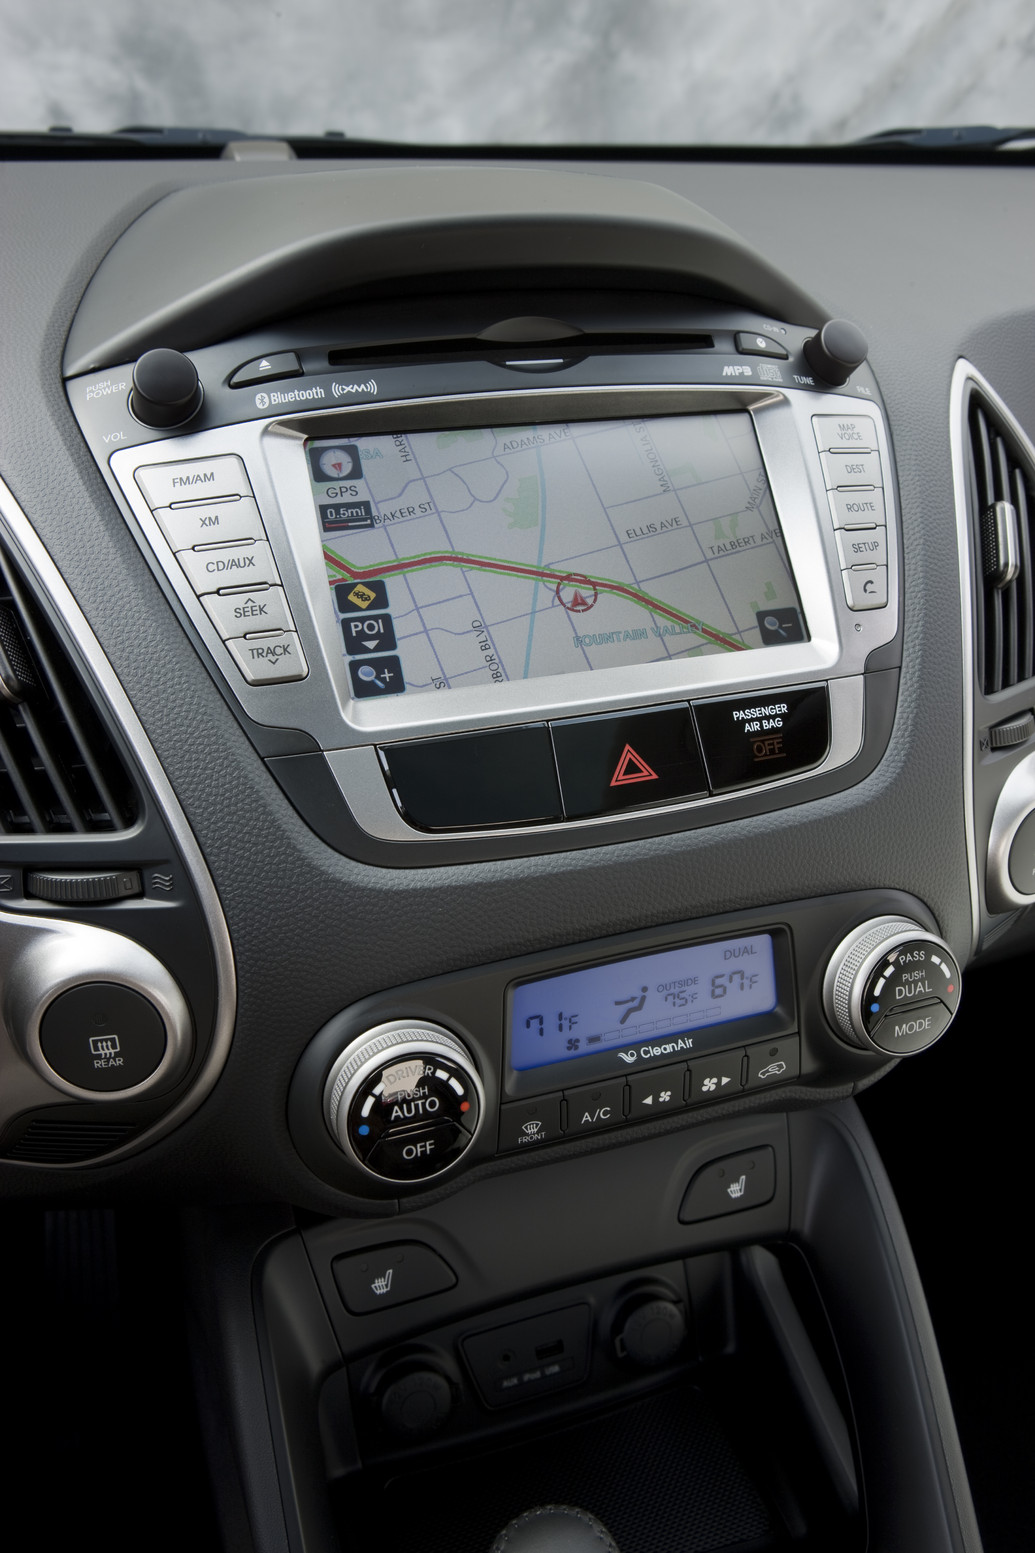 2010 Hyundai Tucson Ix35 Photos Price Reviews